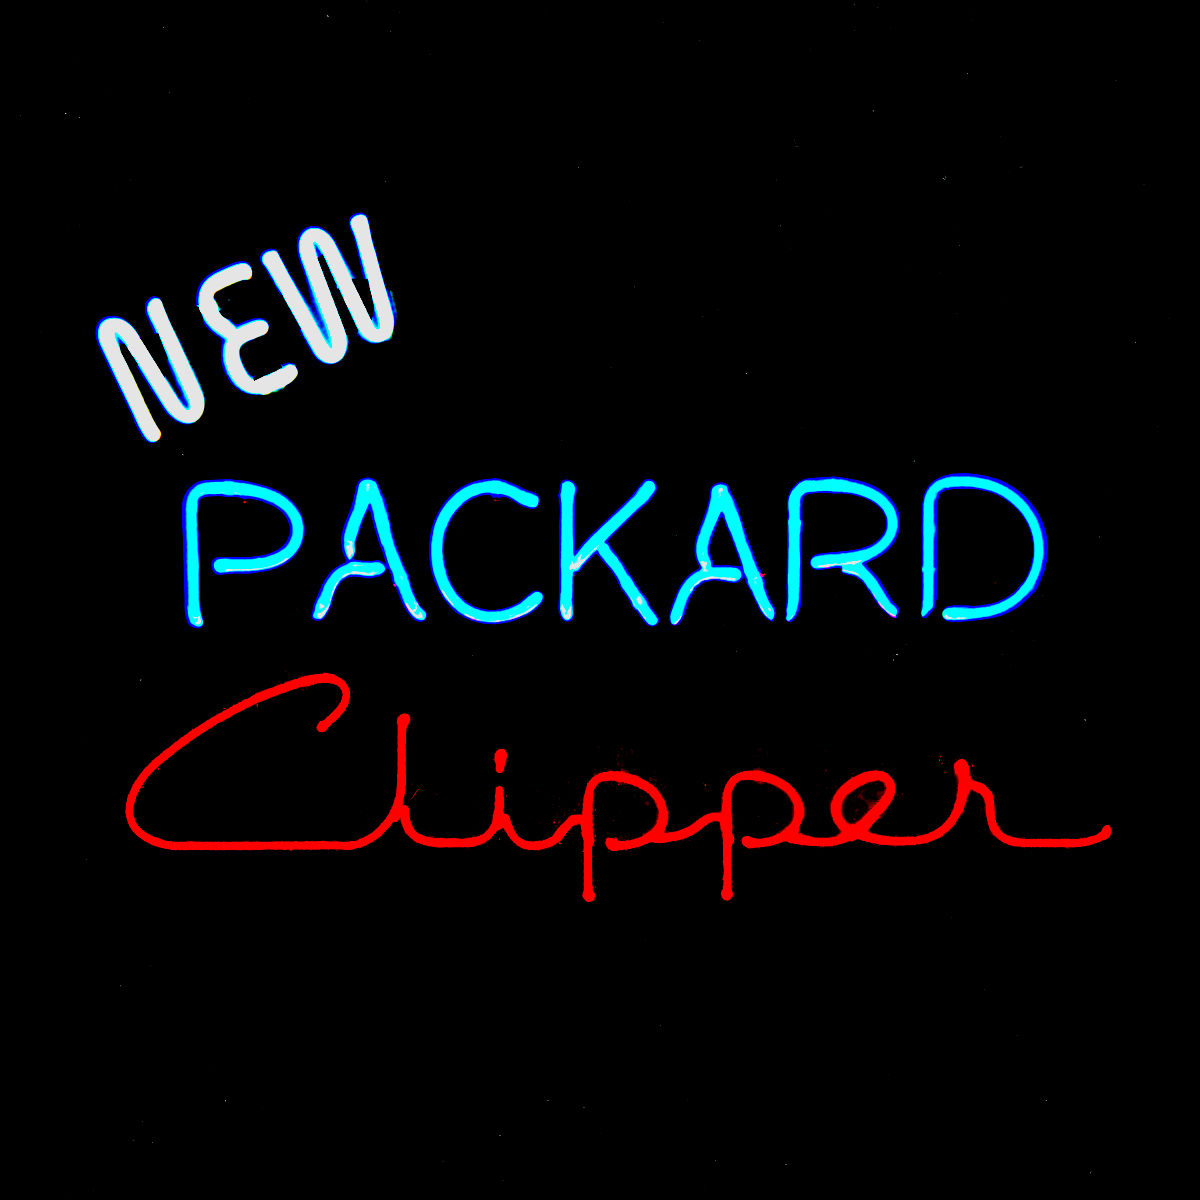 Packard Clipper Dealership Neon Sign by John Barton - former Packard New Car Dealer - BartonNeonMagic.com